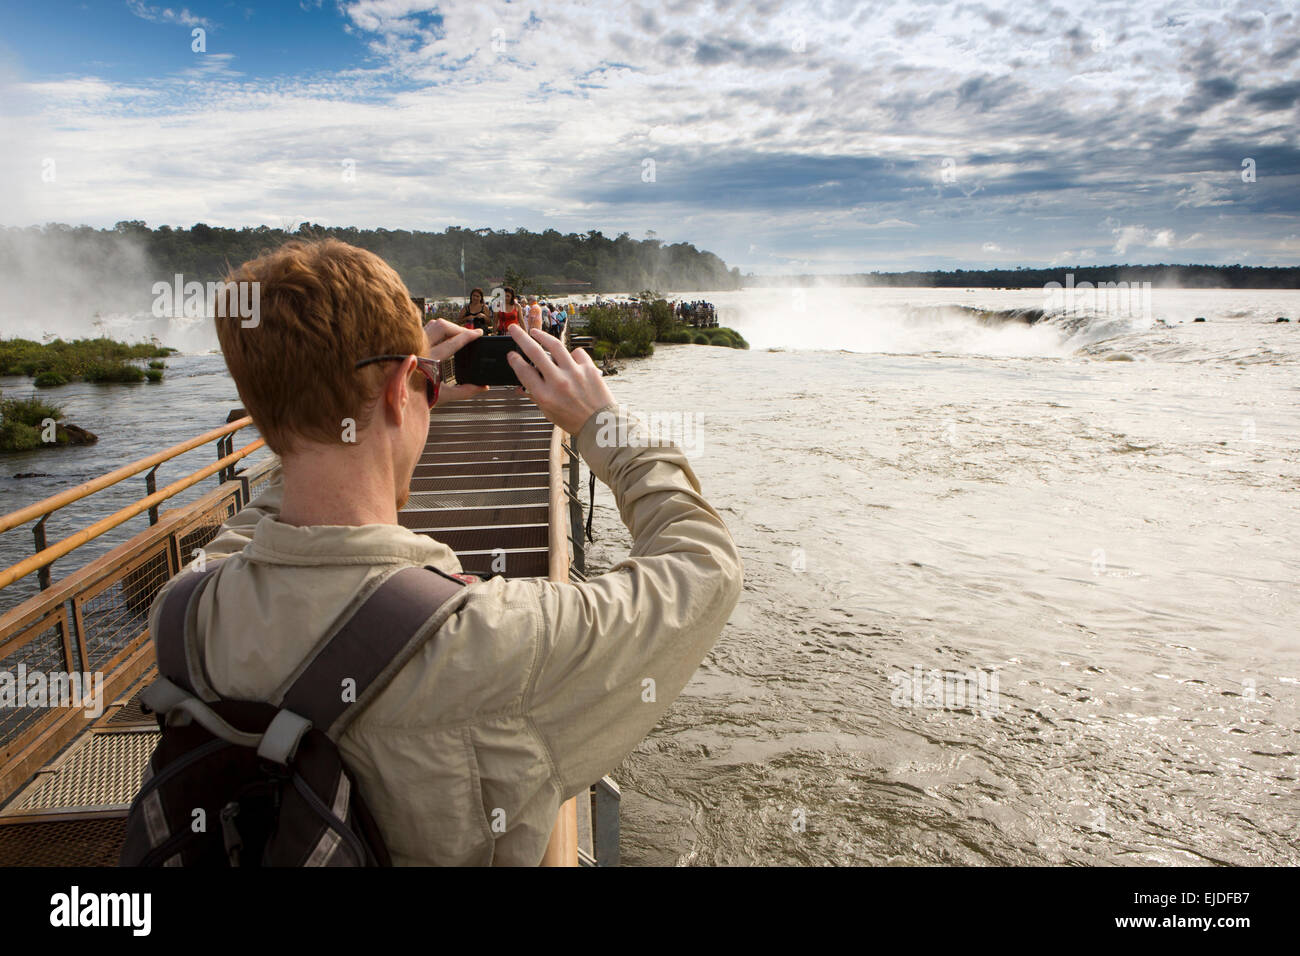 Argentina, Iguazu Falls National Park, tourist taking picture of Garganta el Diablo waterfall, from elevated walkway - Stock Image